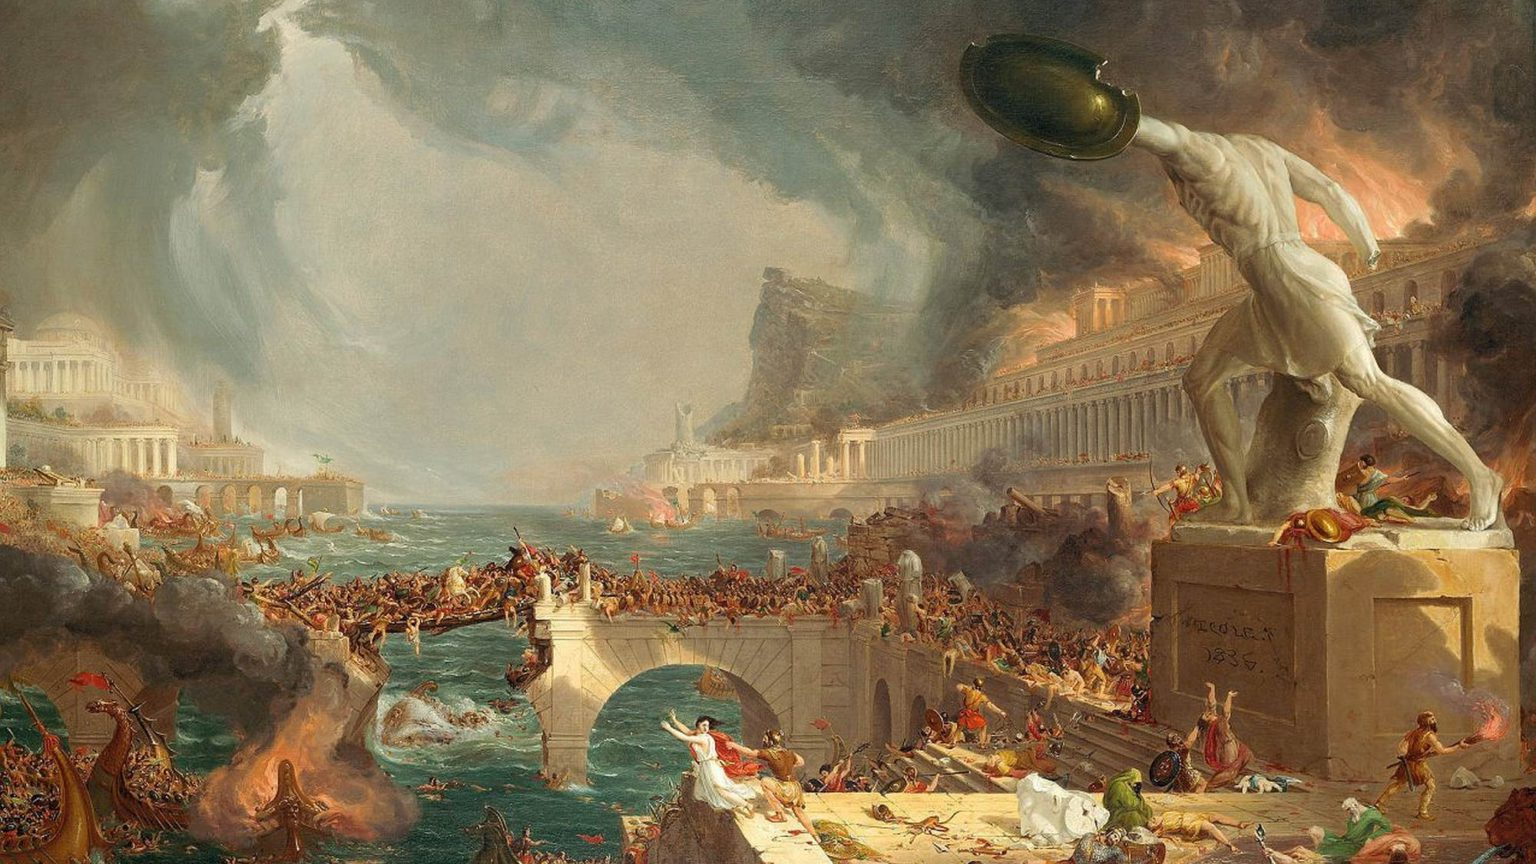 Our 'Brexit' from the Roman Empire